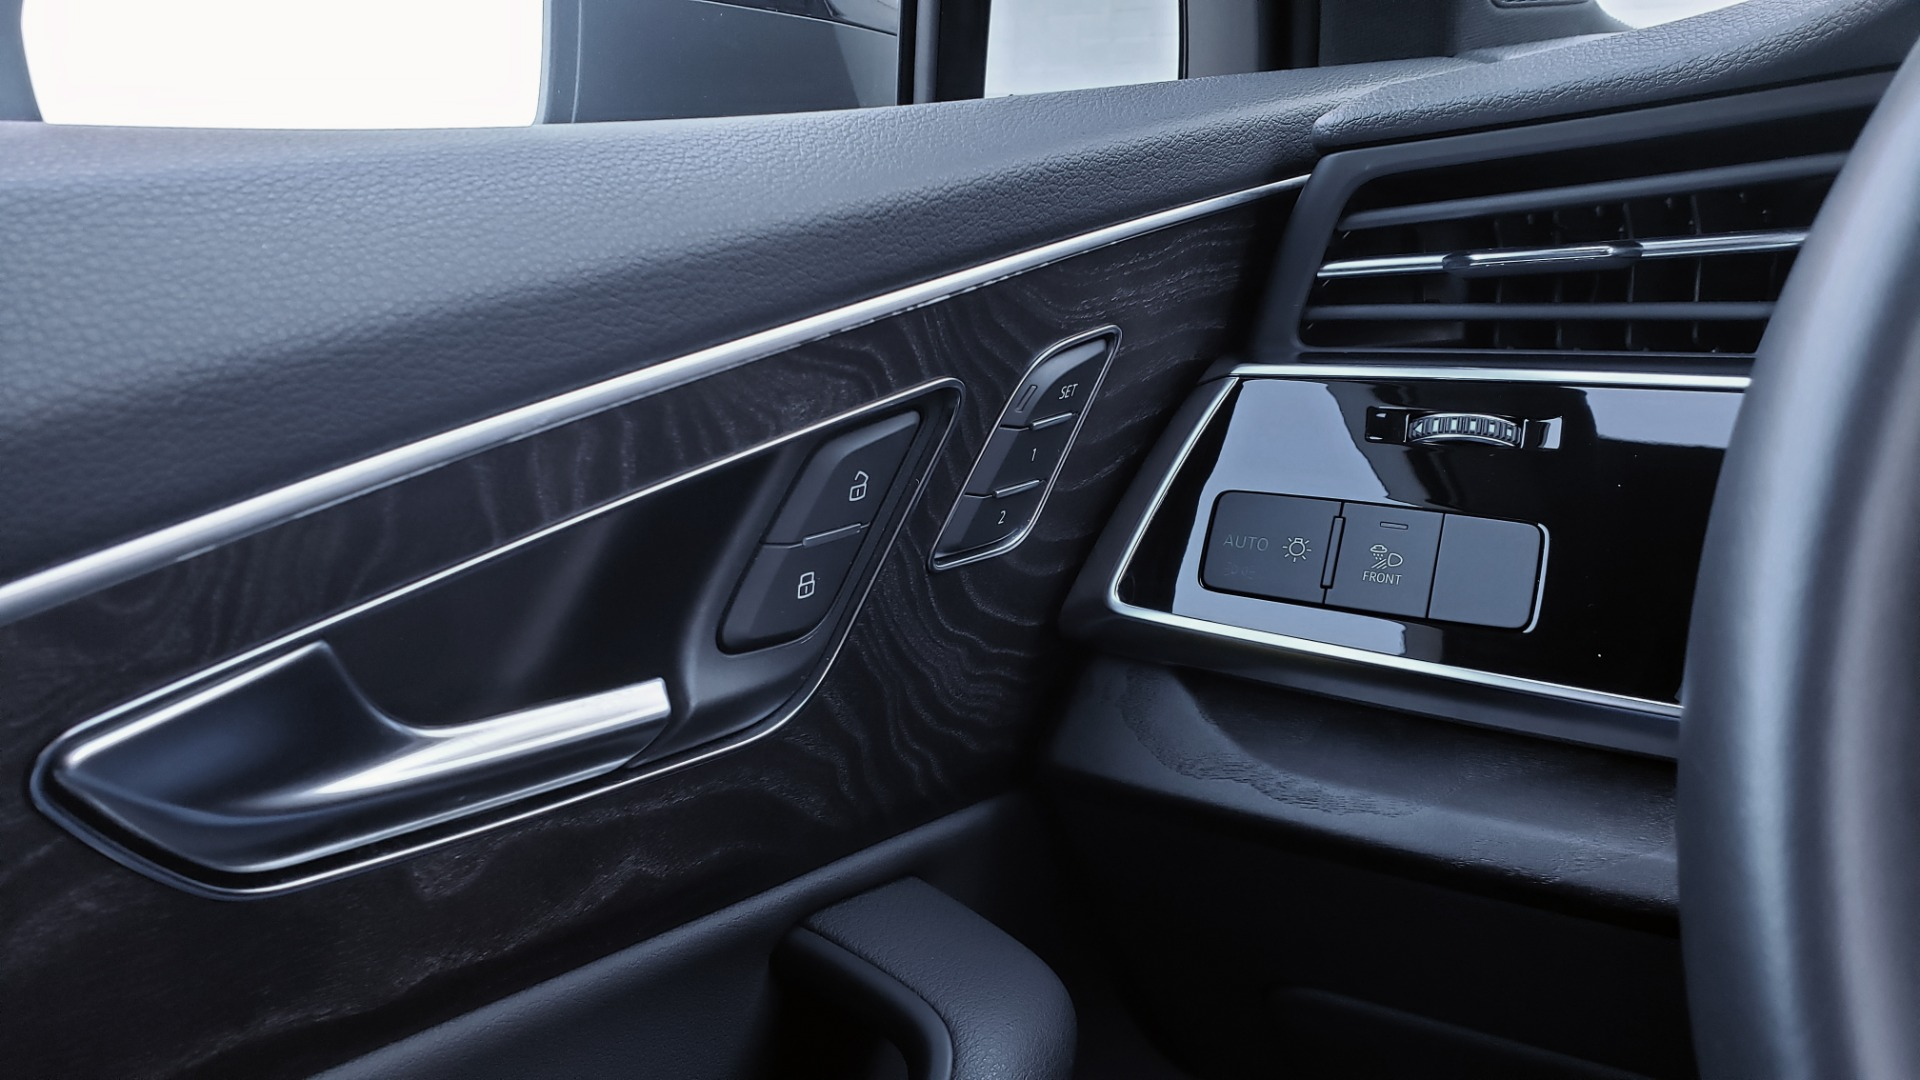 Used 2020 Audi Q7 PREMIUM PLUS / NAV / SUNROOF / 3-ROW / REARVIEW for sale $50,695 at Formula Imports in Charlotte NC 28227 41